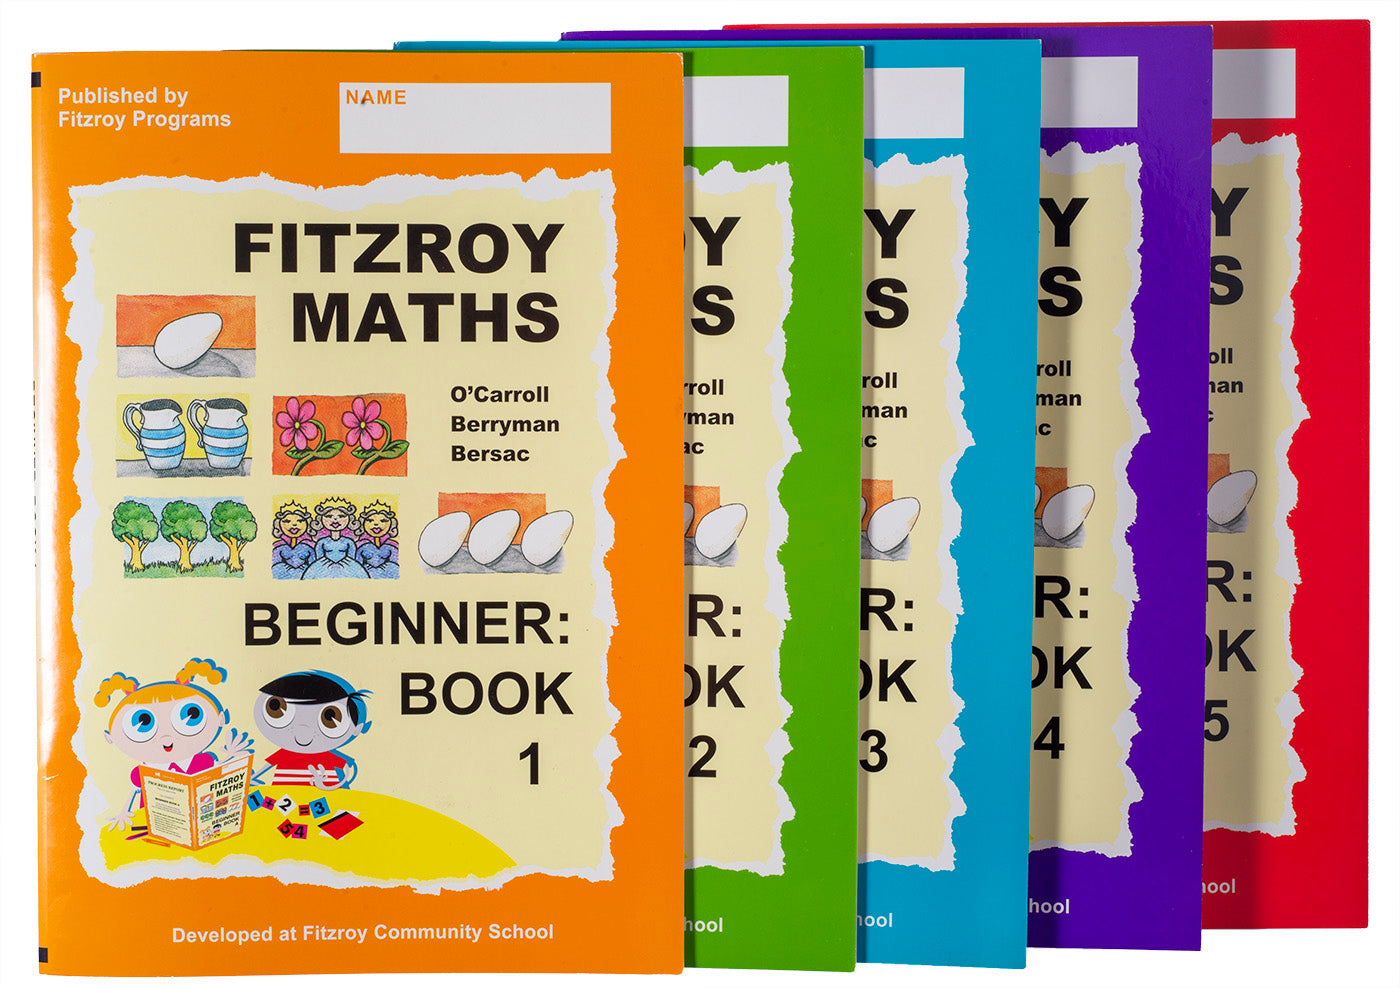 Fitzroy Maths Beginner Level Workbooks 1-5